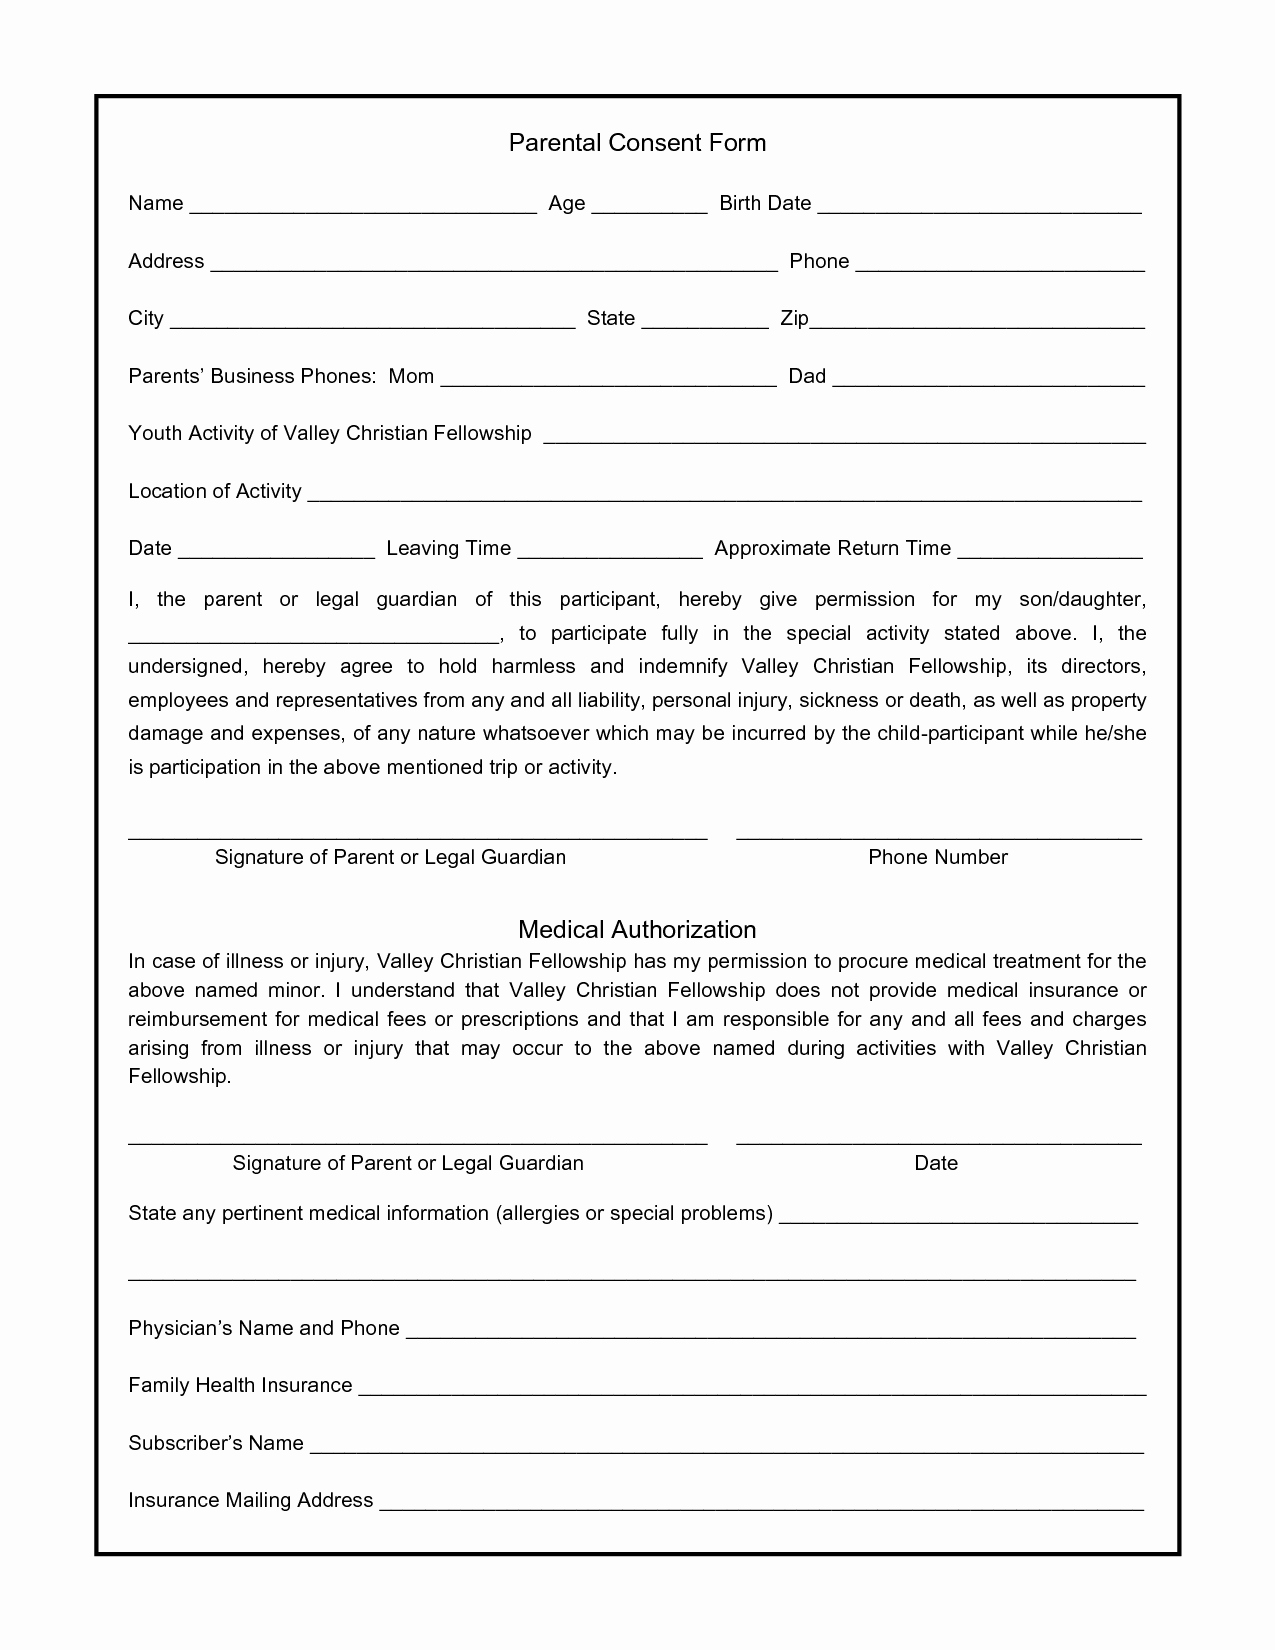 Letter Of Permission to Travel with Grandchildren Template Lovely Parental Consent form for S Swifter Parental